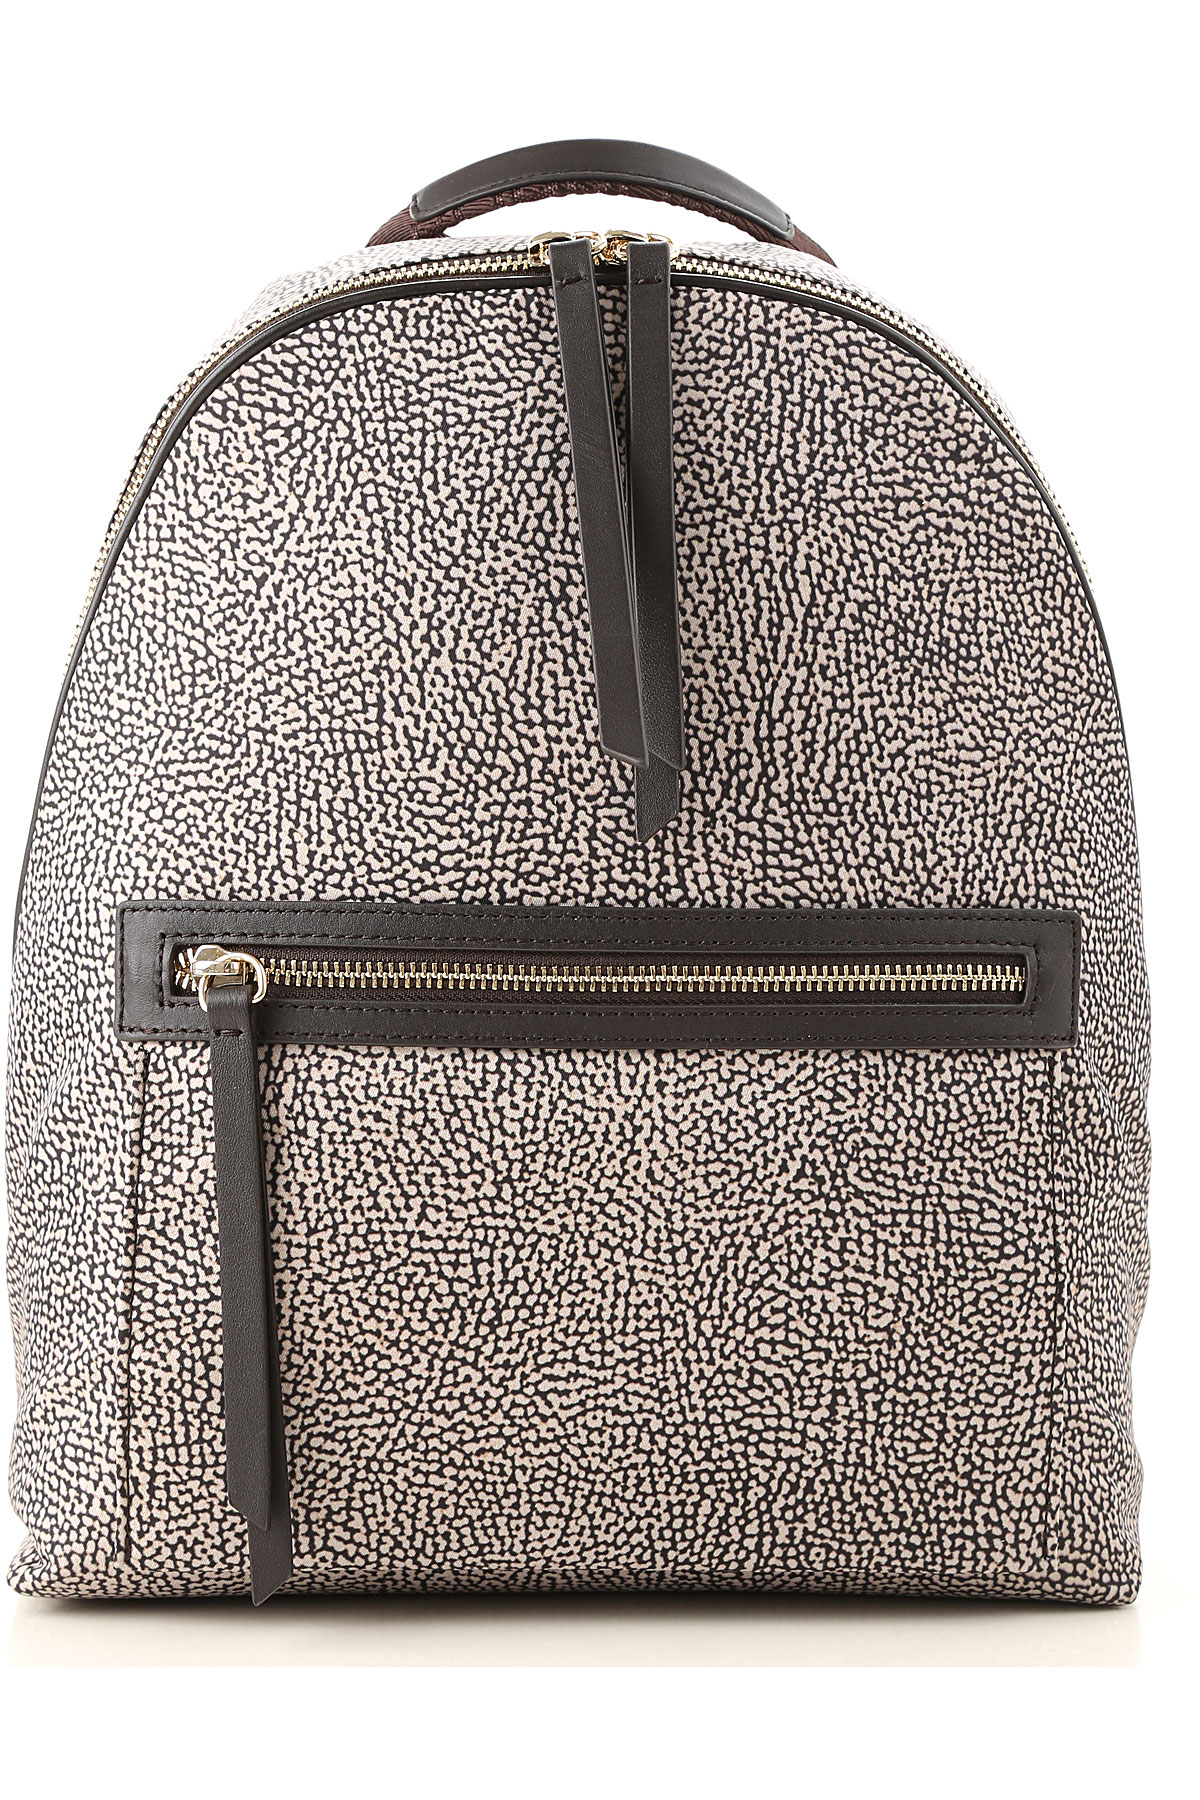 Image of Borbonese Backpack for Women, Natural, Nylon, 2017